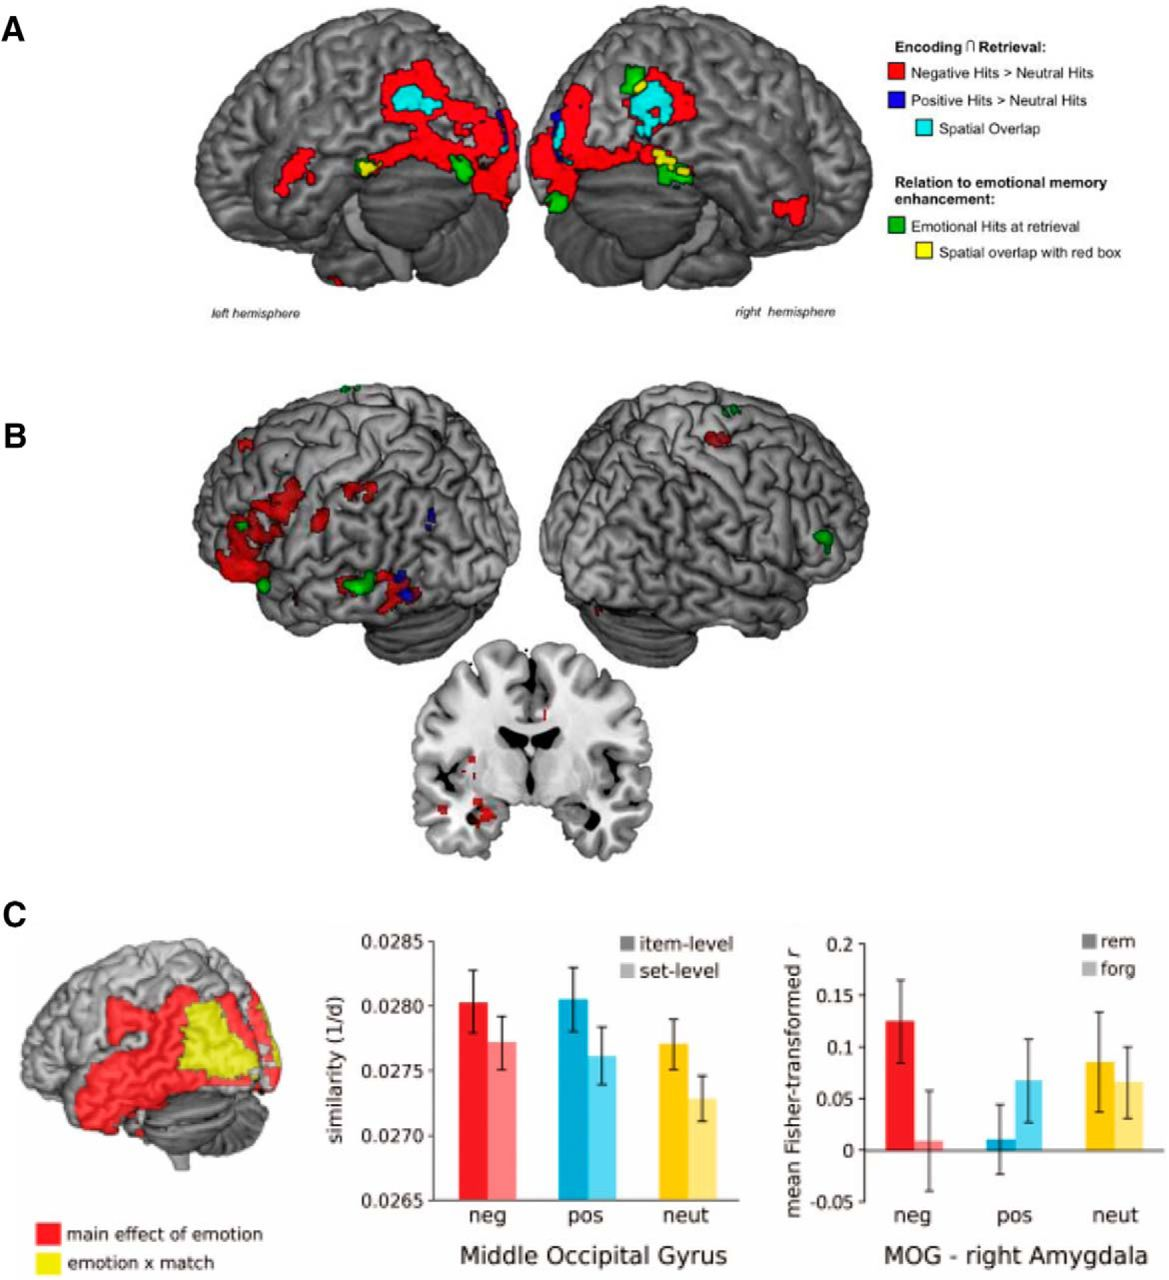 Empirical evidence of emotion-enhanced sensory cortex and amygdala recapitulation during memory retrieval. A, Conjunction fMRI analyses of brain activity associated with successful memory during encoding and retrieval revealed significant spatial overlap (i.e., recapitulation) in ventral temporo-occipital cortex for negative and positive emotional images (red, blue and turquoise clusters). The spatial extent of recapitulation across the visual stream was greater for negative (red clusters) than positive emotional stimuli (blue clusters). Areas associated with emotion-related recapitulation were also correlated with emotional enhancements (not differentiated by valence) in behavior (data and figure from Kark and Kensinger, 2015).